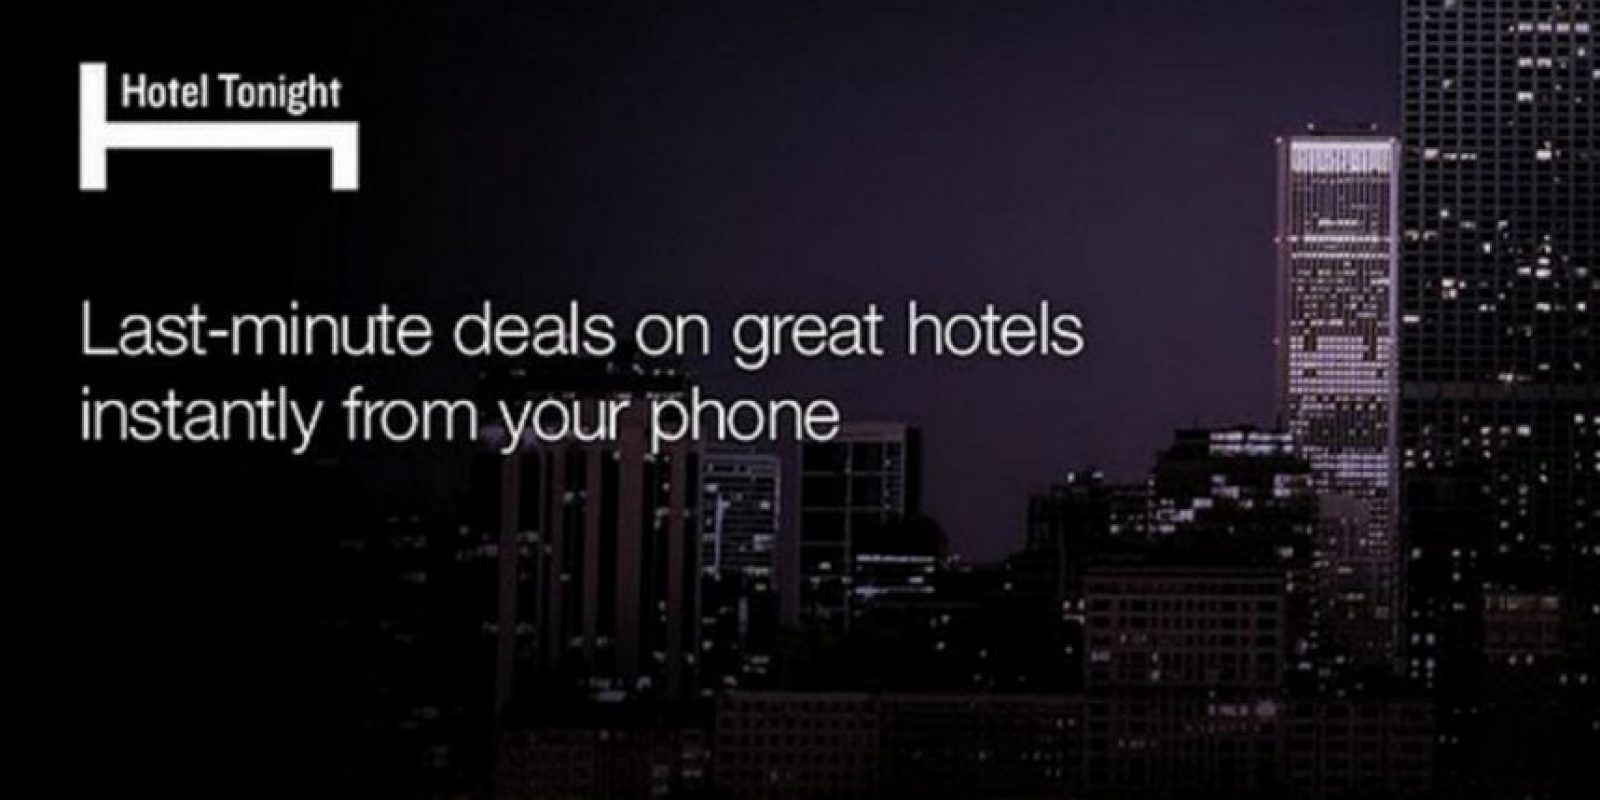 La app está disponible para iOS, Android y Windows Phone. Foto: Hotel Tonight